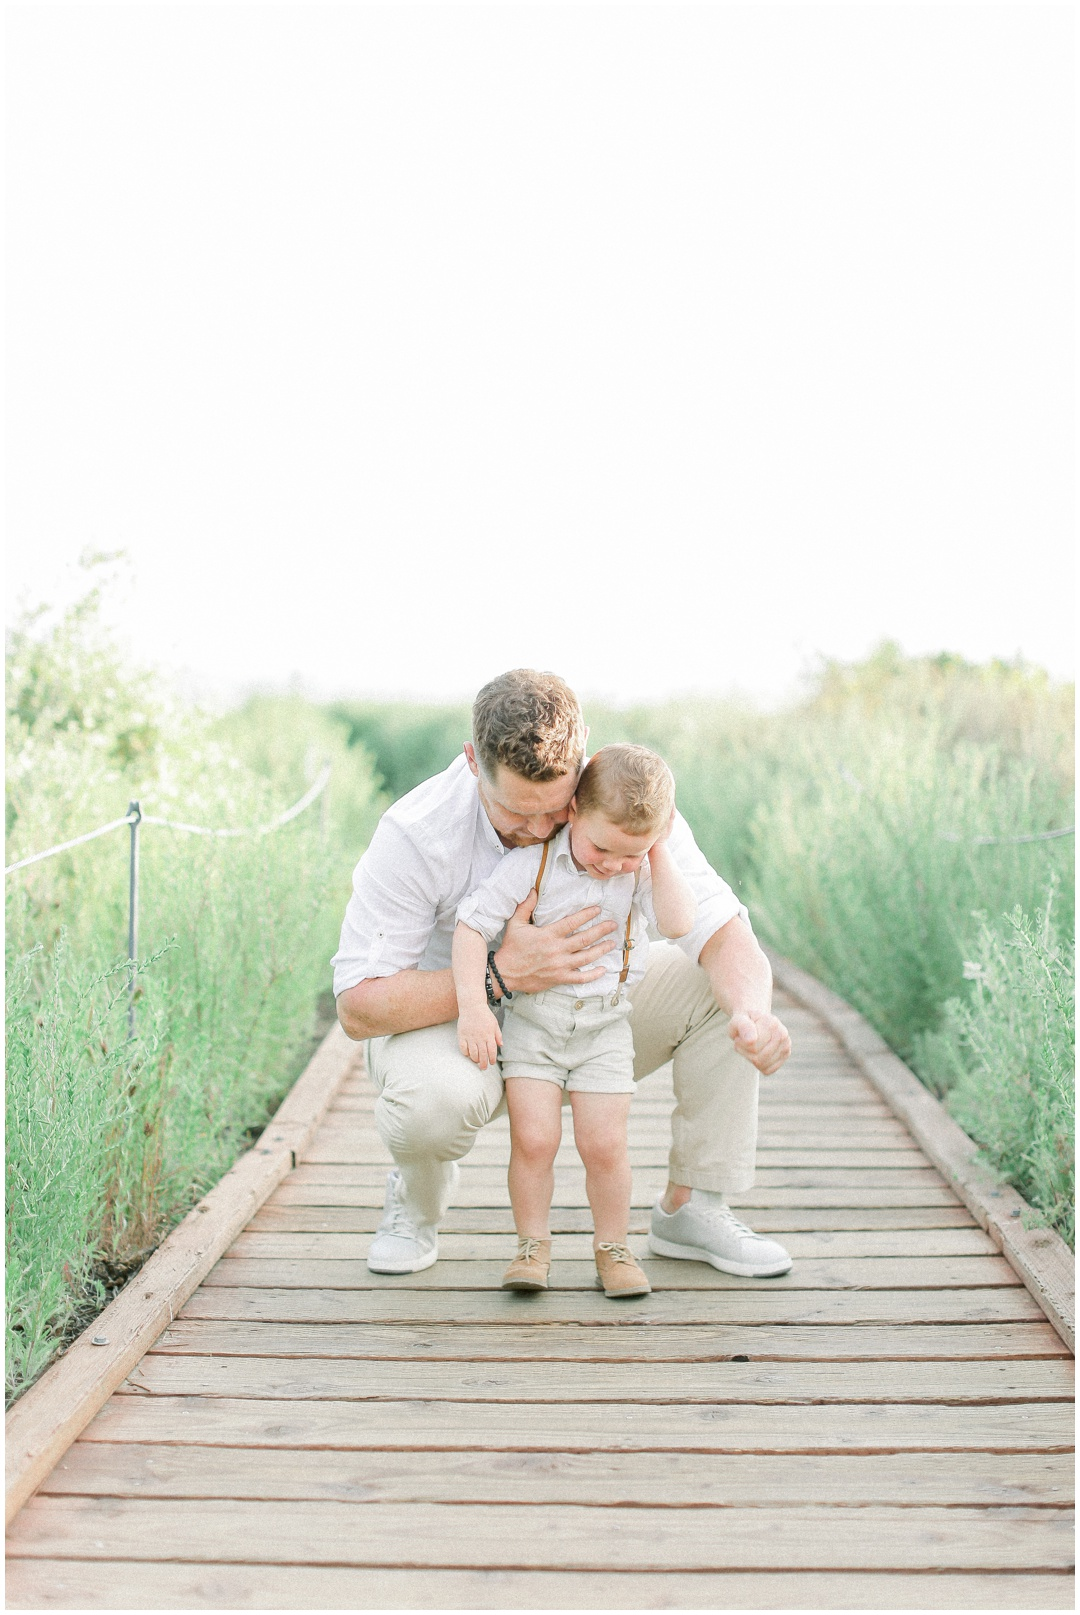 Newport_Beach_Newborn_Light_Airy_Natural_Photographer_Newport_Beach_Photographer_Orange_County_Family_Photographer_Cori_Kleckner_Photography_Newport_Beach_Photographer_Maternity_kole_calhoun56_kole_calhoun_Jennifer_Calhoun_Knox_Calhoun_3753.jpg